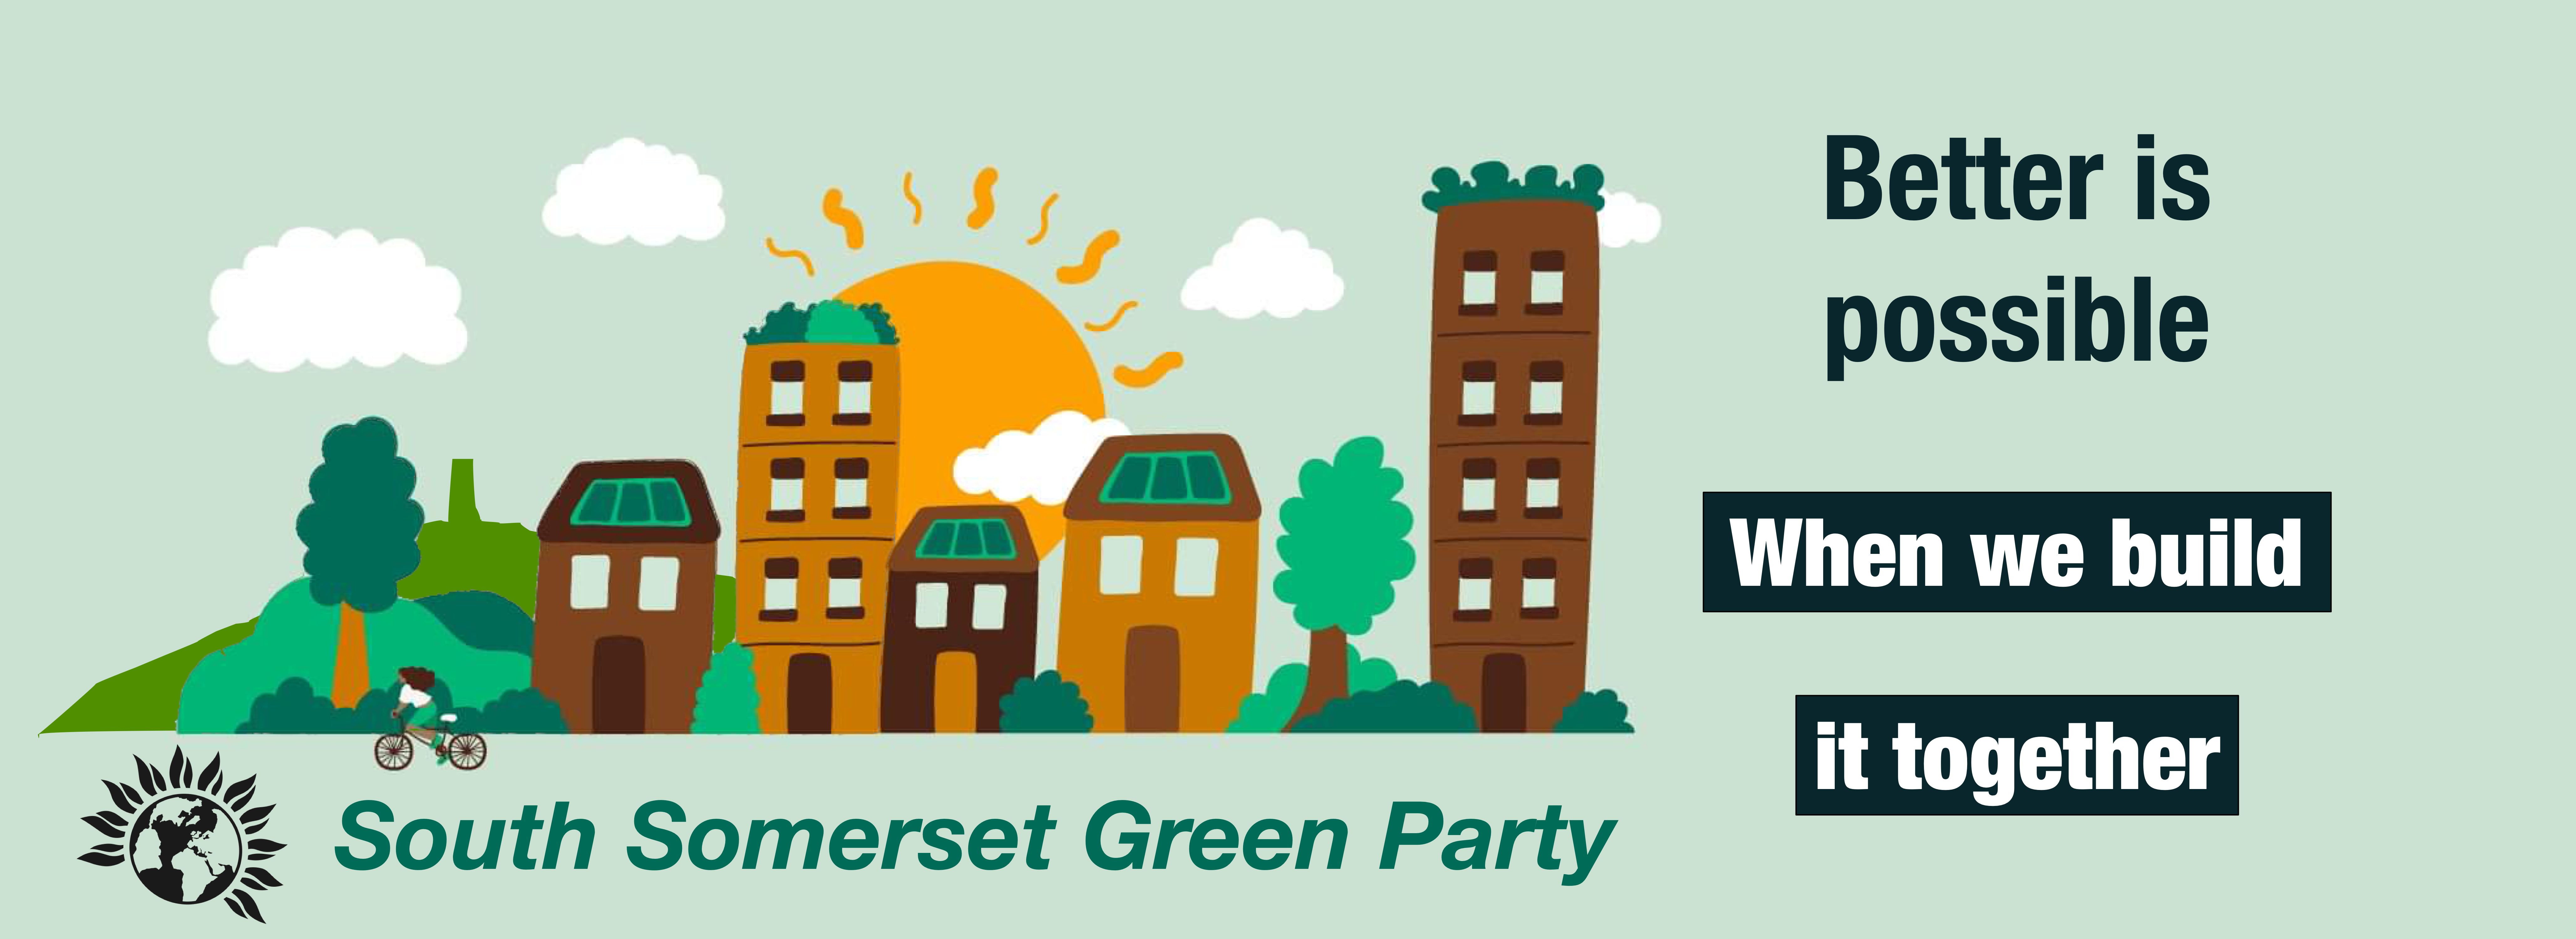 Green Party Better Header